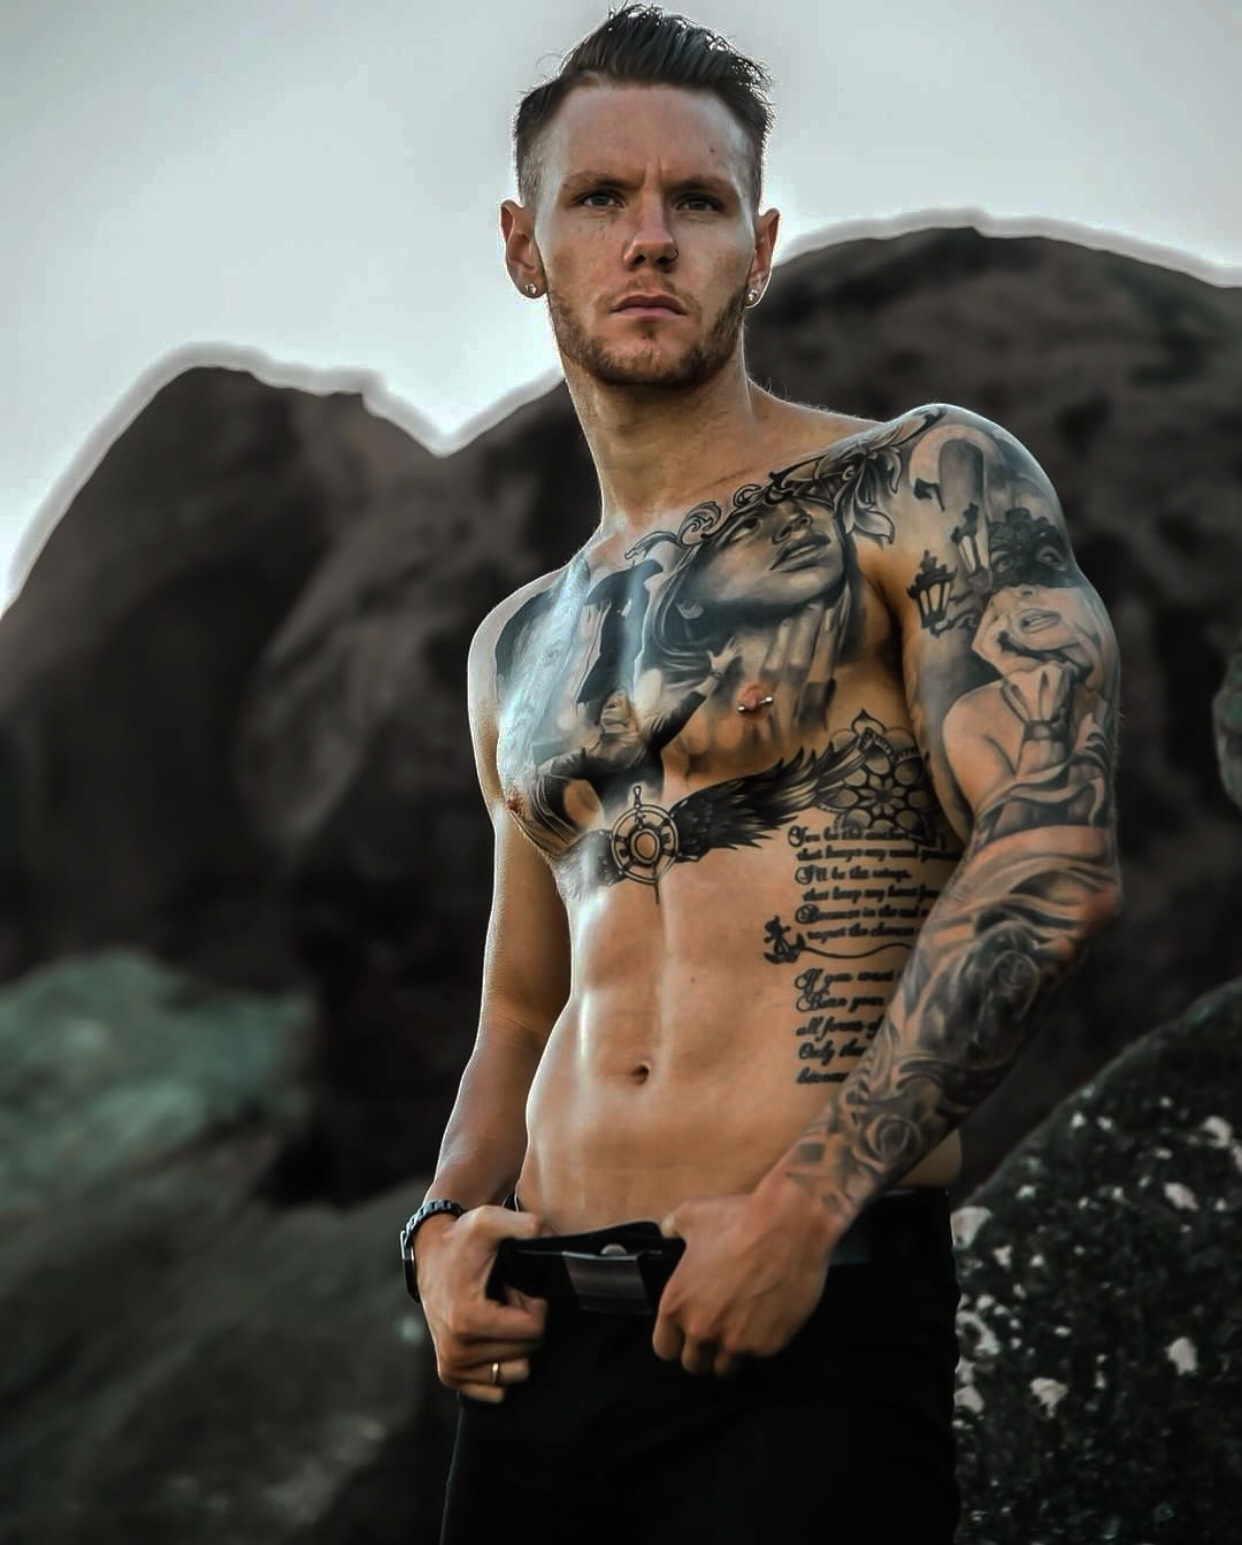 hire and book a sexy tattooed male stripper or topless waiter for gold coast region